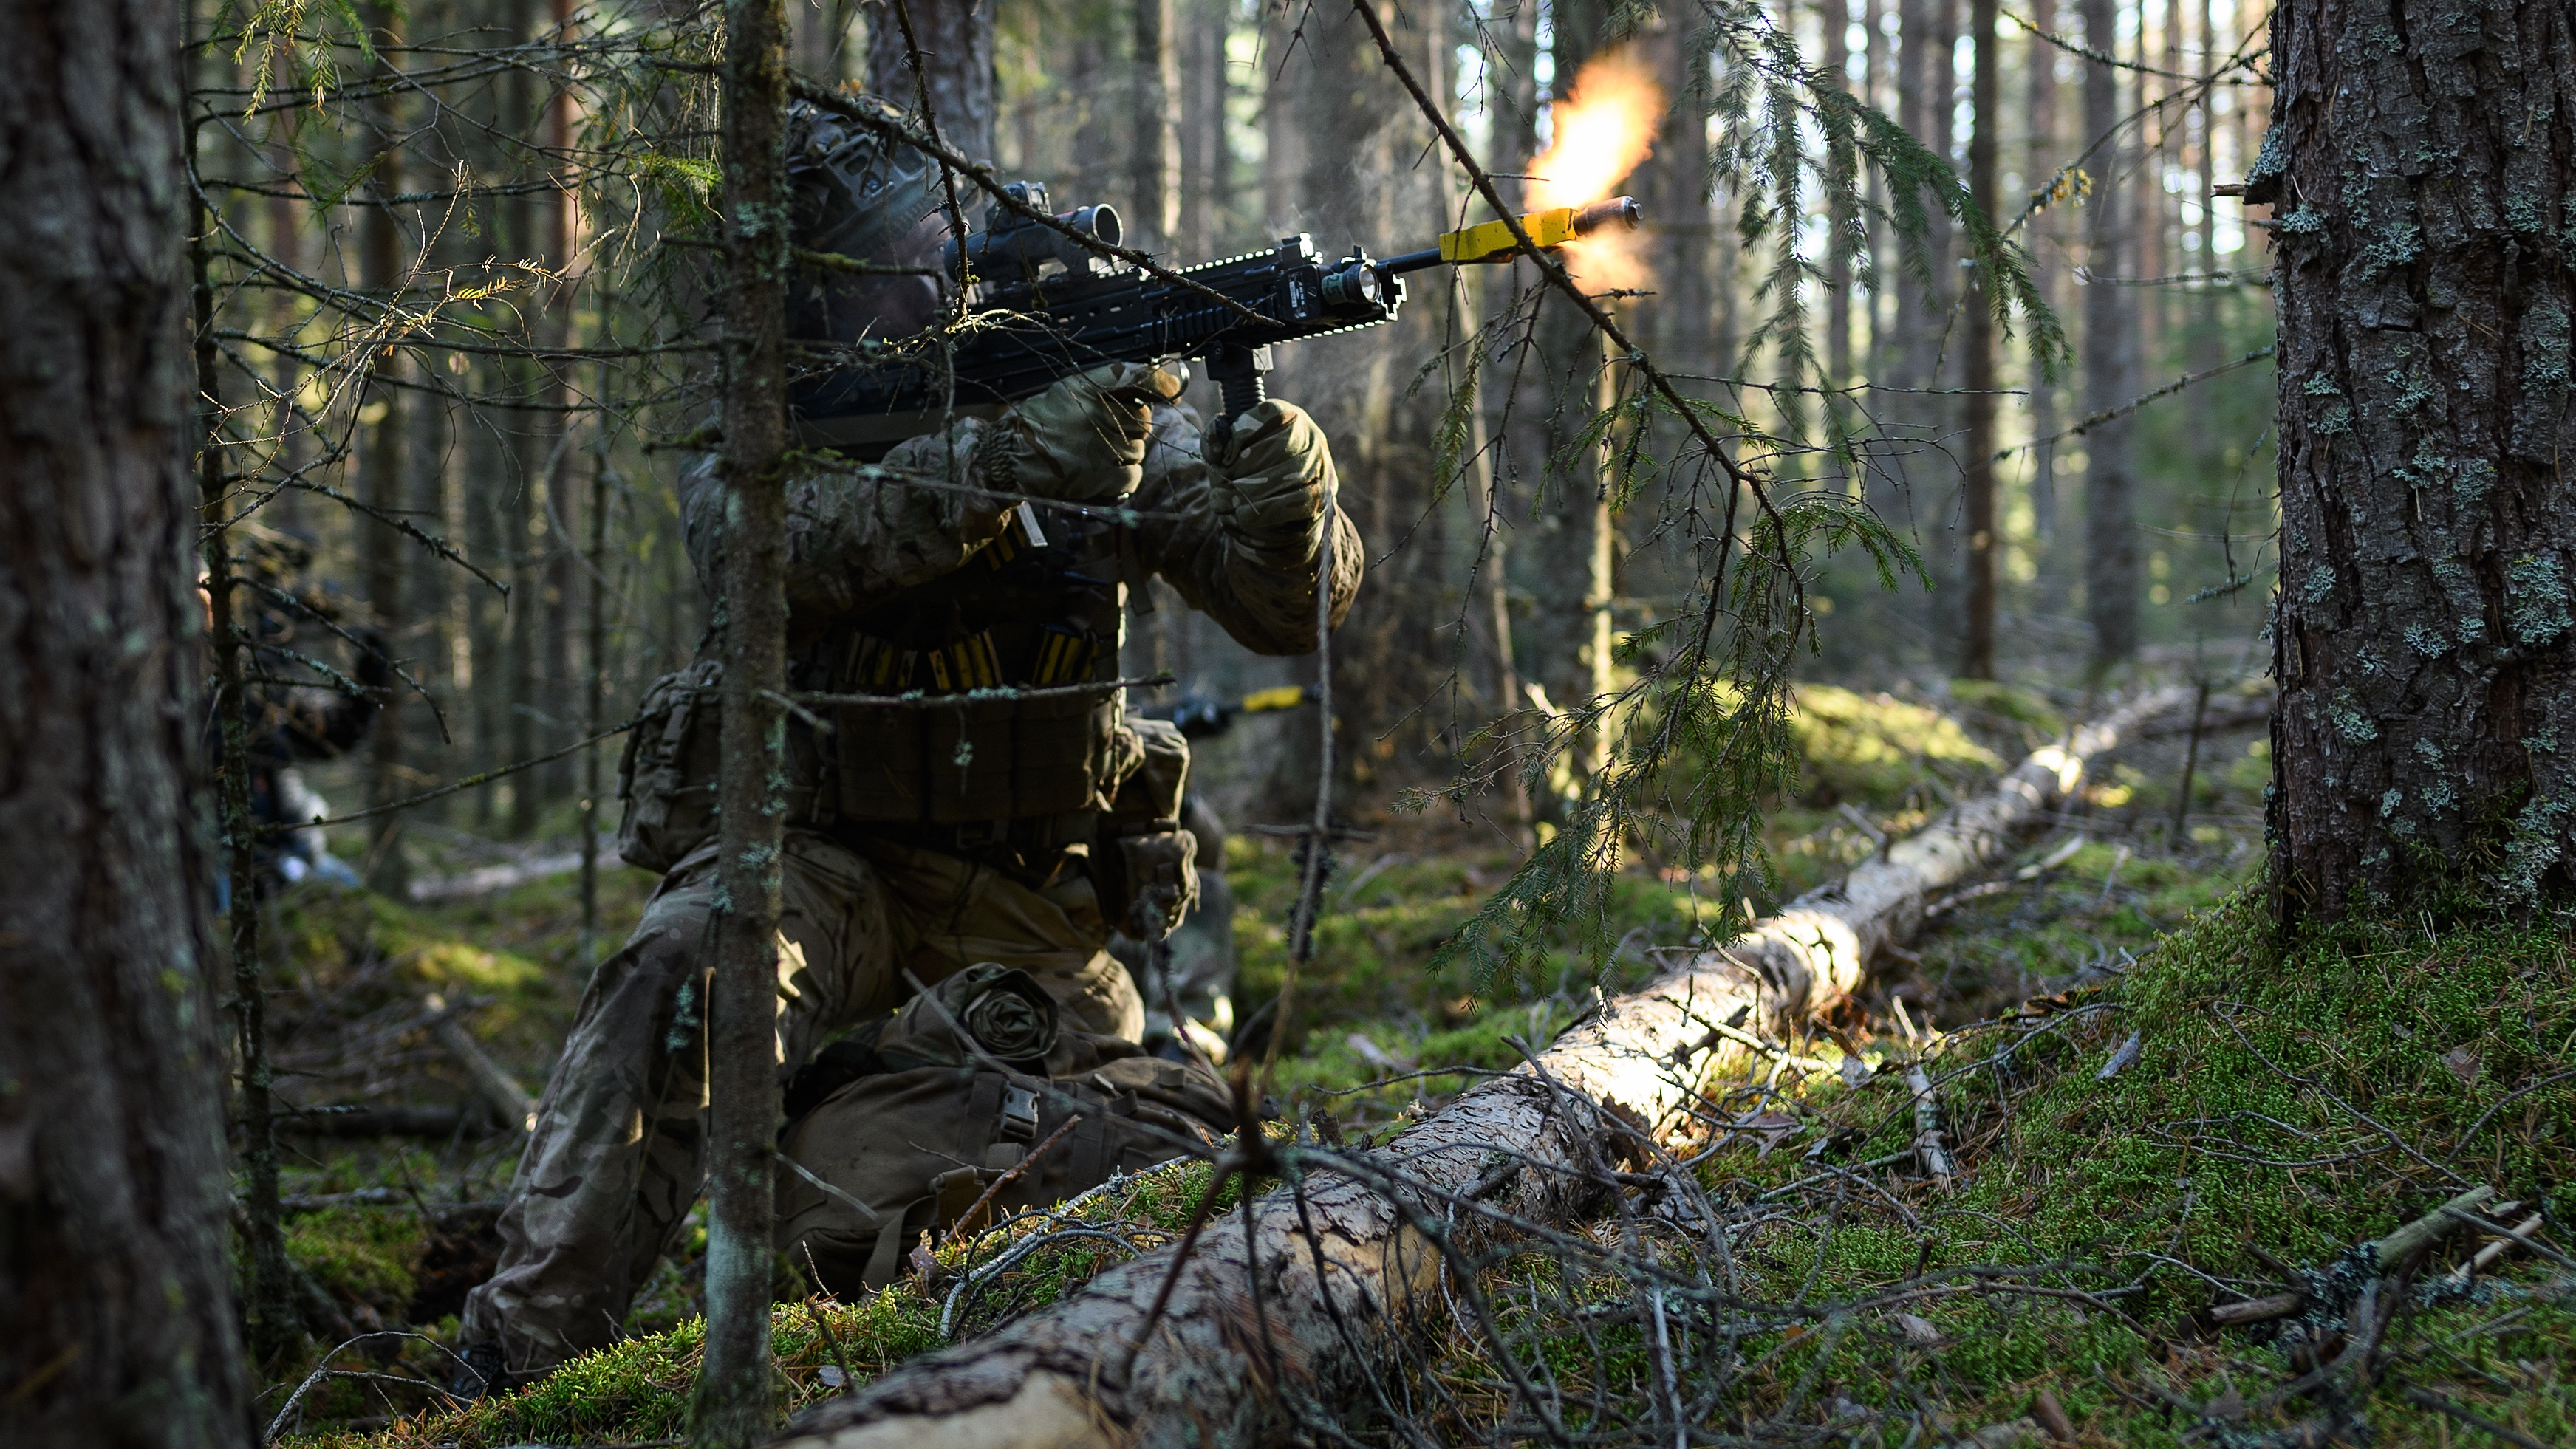 A British soldier from Anzio Company of the Duke of Lancaster Regiment takes part in FIWAF (fighting in woods and forests) training during pre-exercise integration training on October 26, 2018 in Haslemoen, Norway. Over 40,000 participants from 31 nations will take part in the NATO